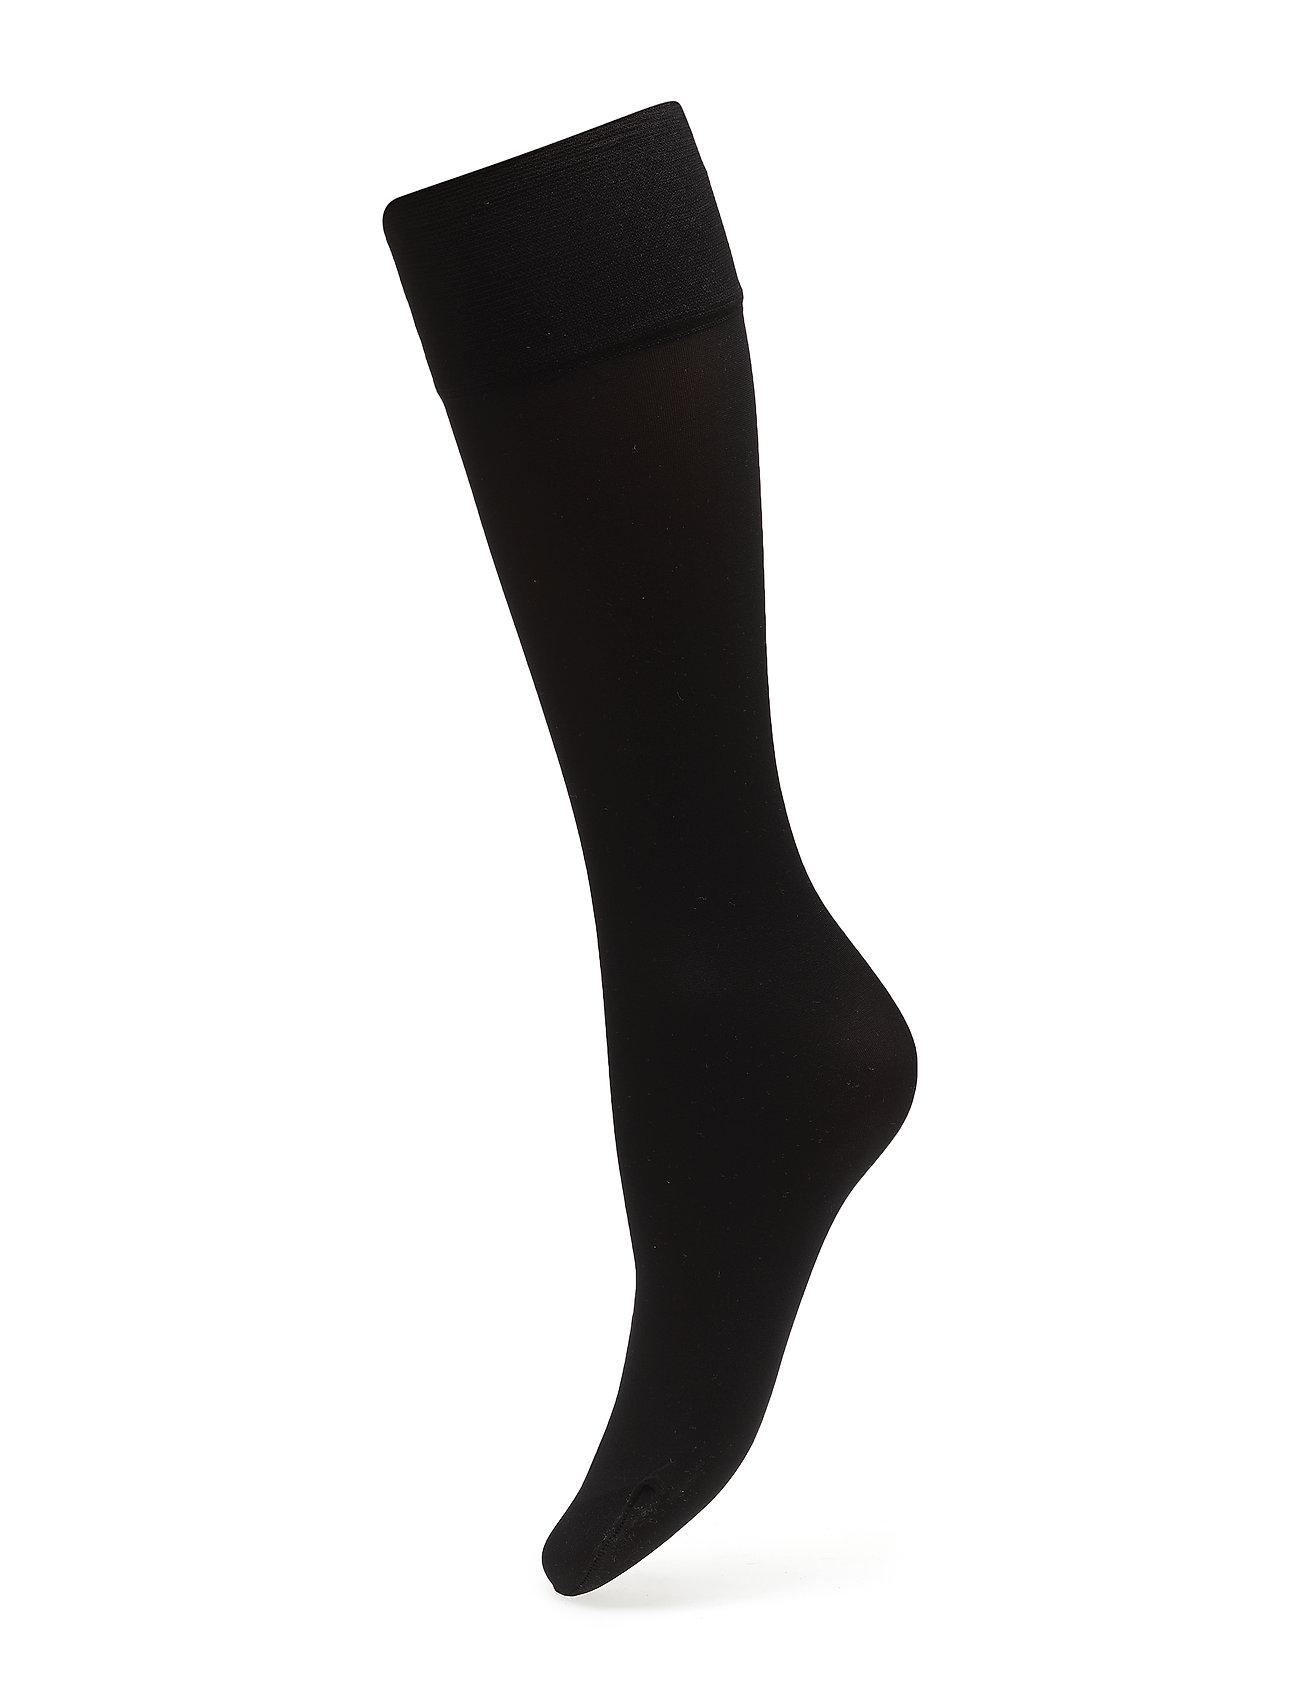 Swedish Stockings Irma Support knee-high 60D - BLACK